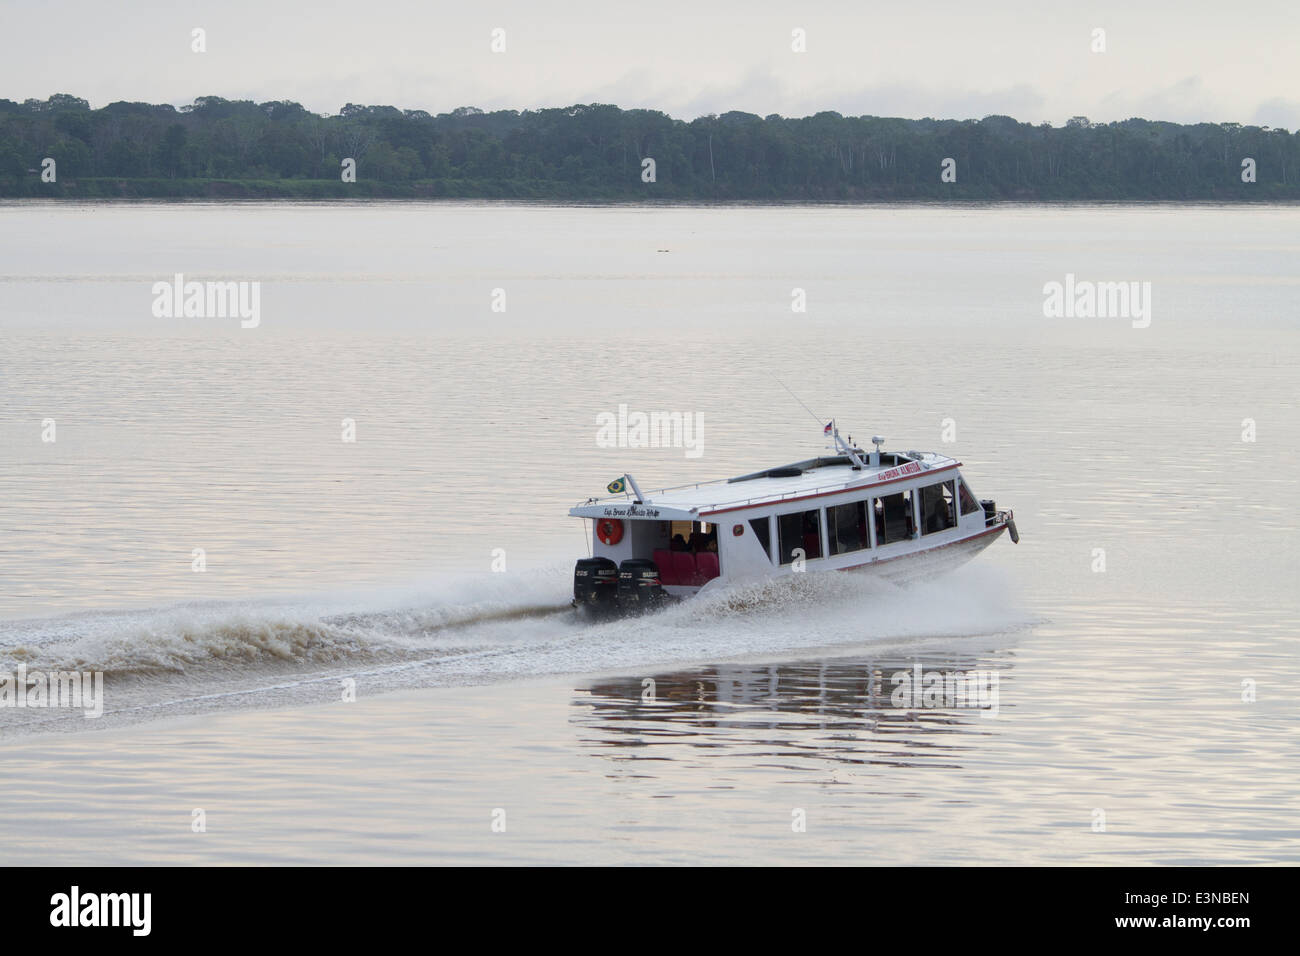 River Taxi - Stock Image